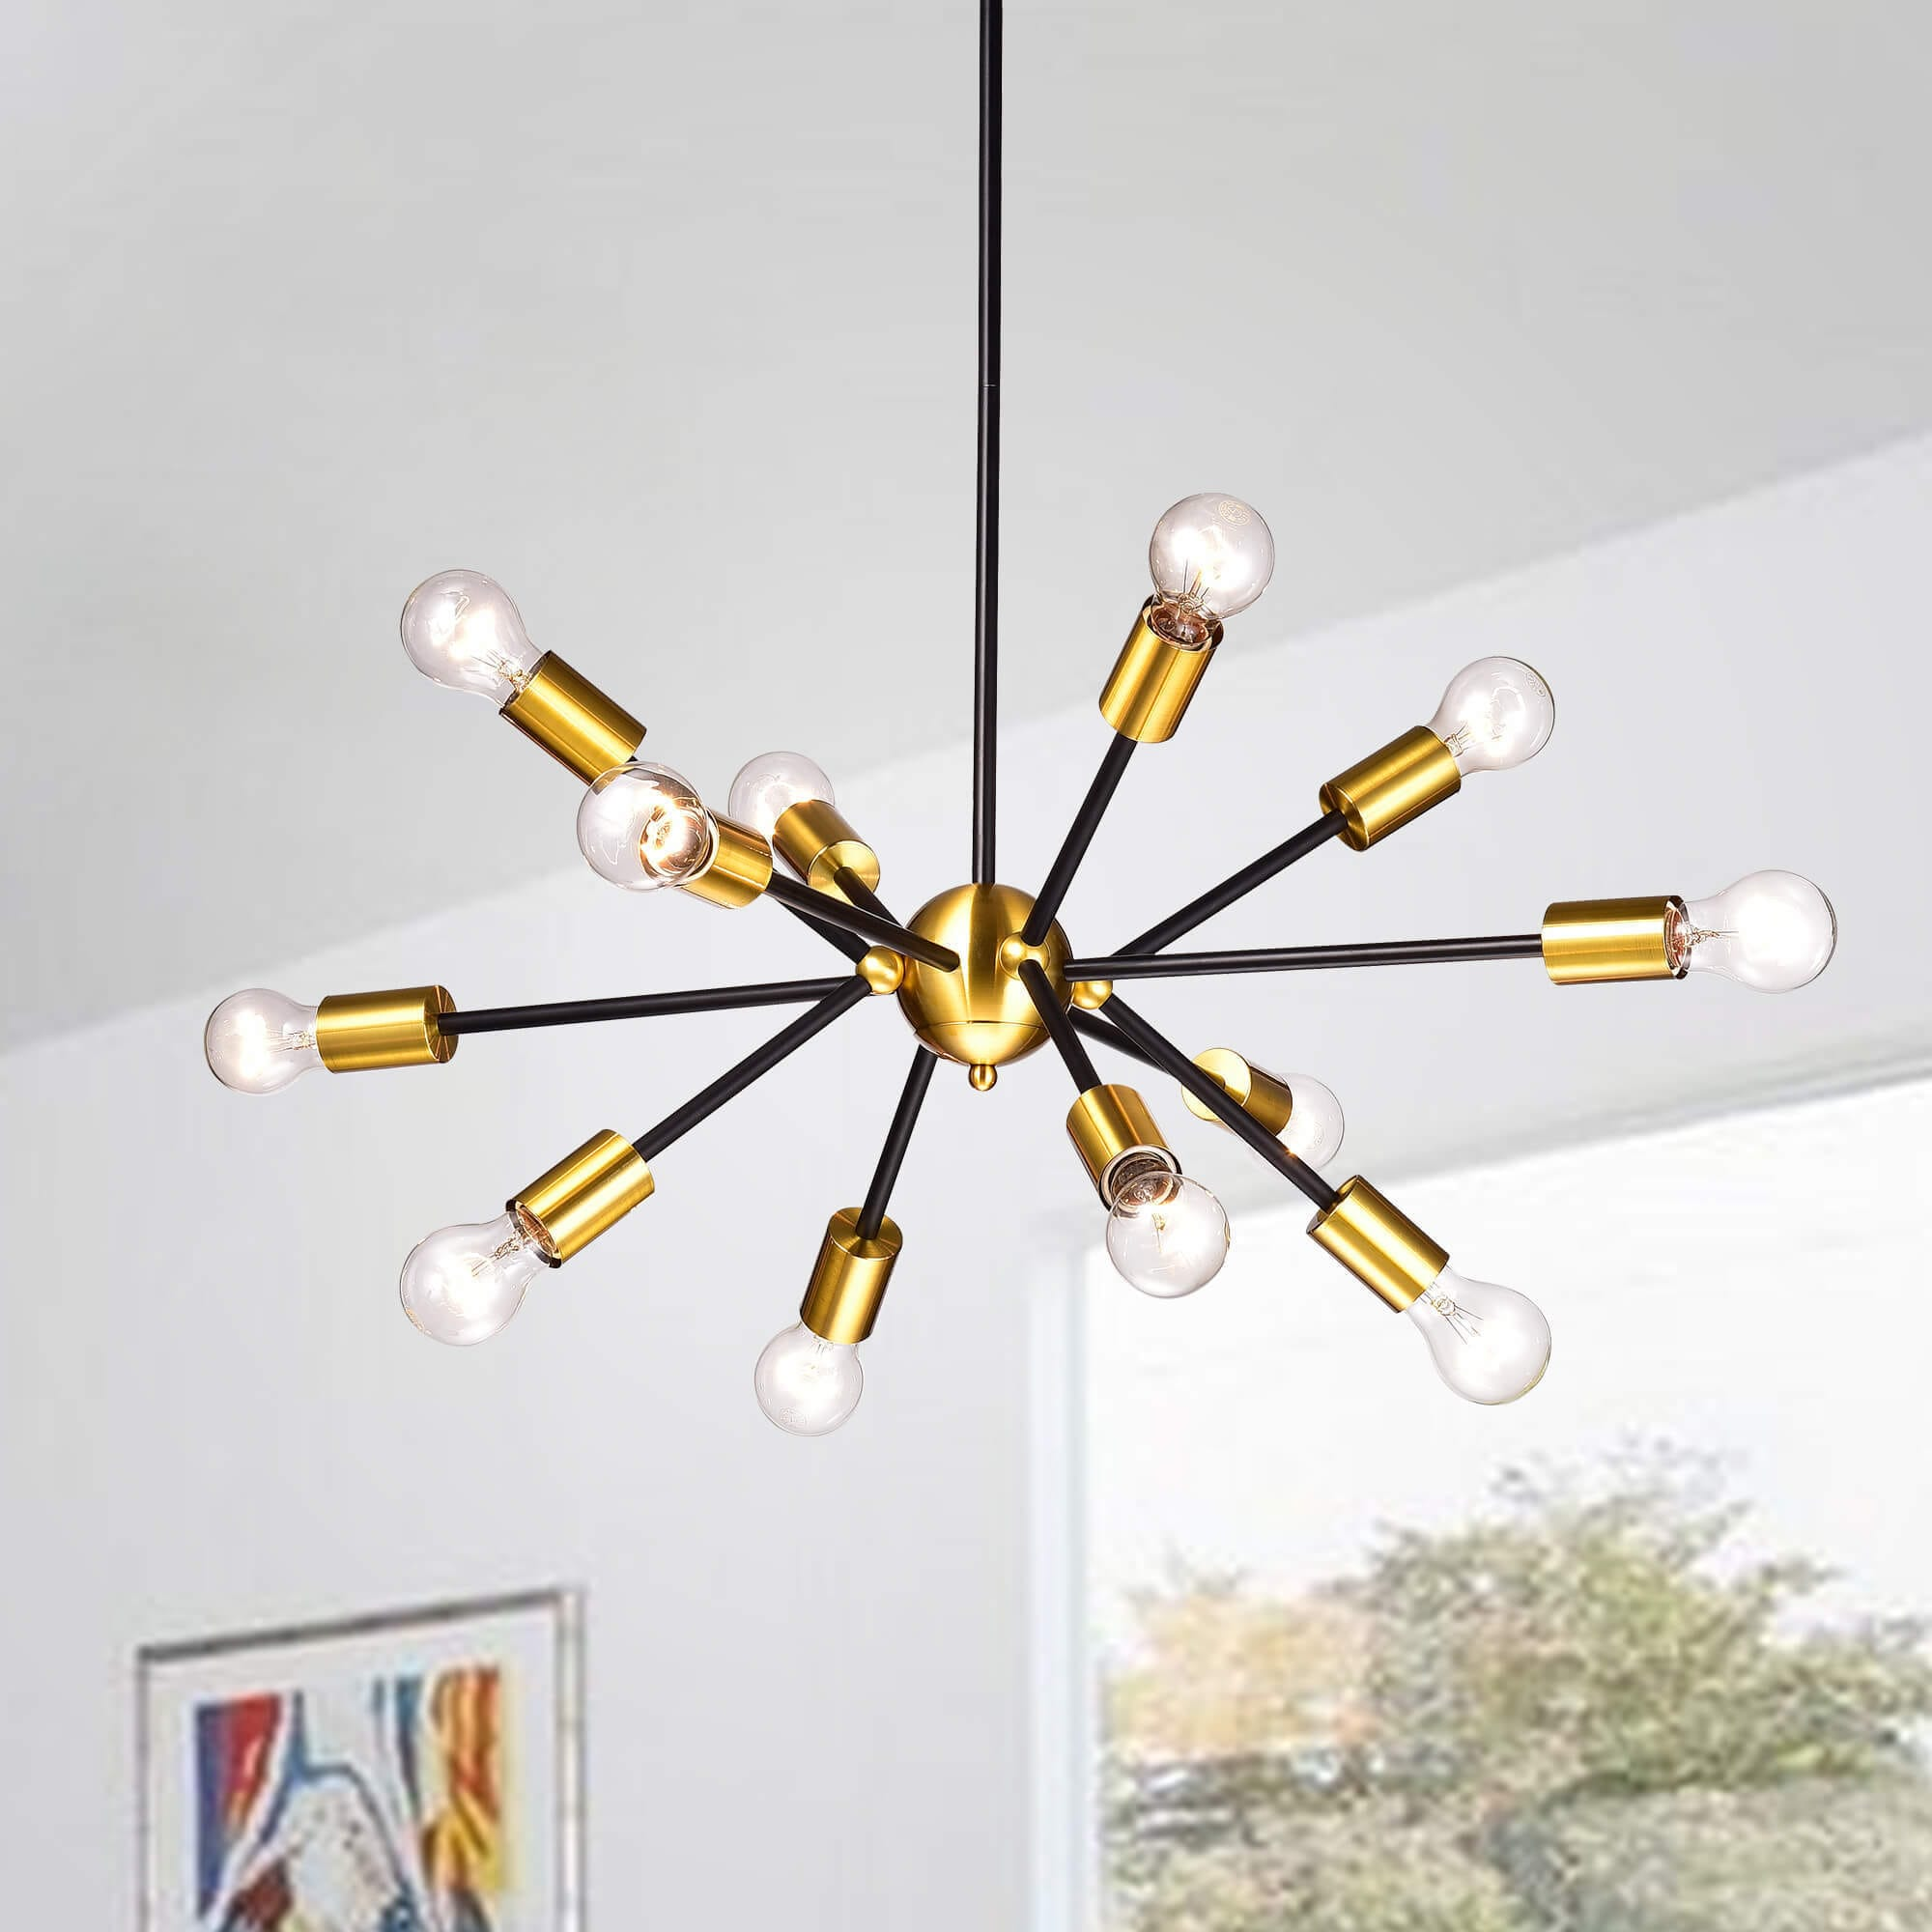 Lorena Sputnik Black Base Metallic Gold Finish Industrial Chandelier N A On Sale Overstock 17306800